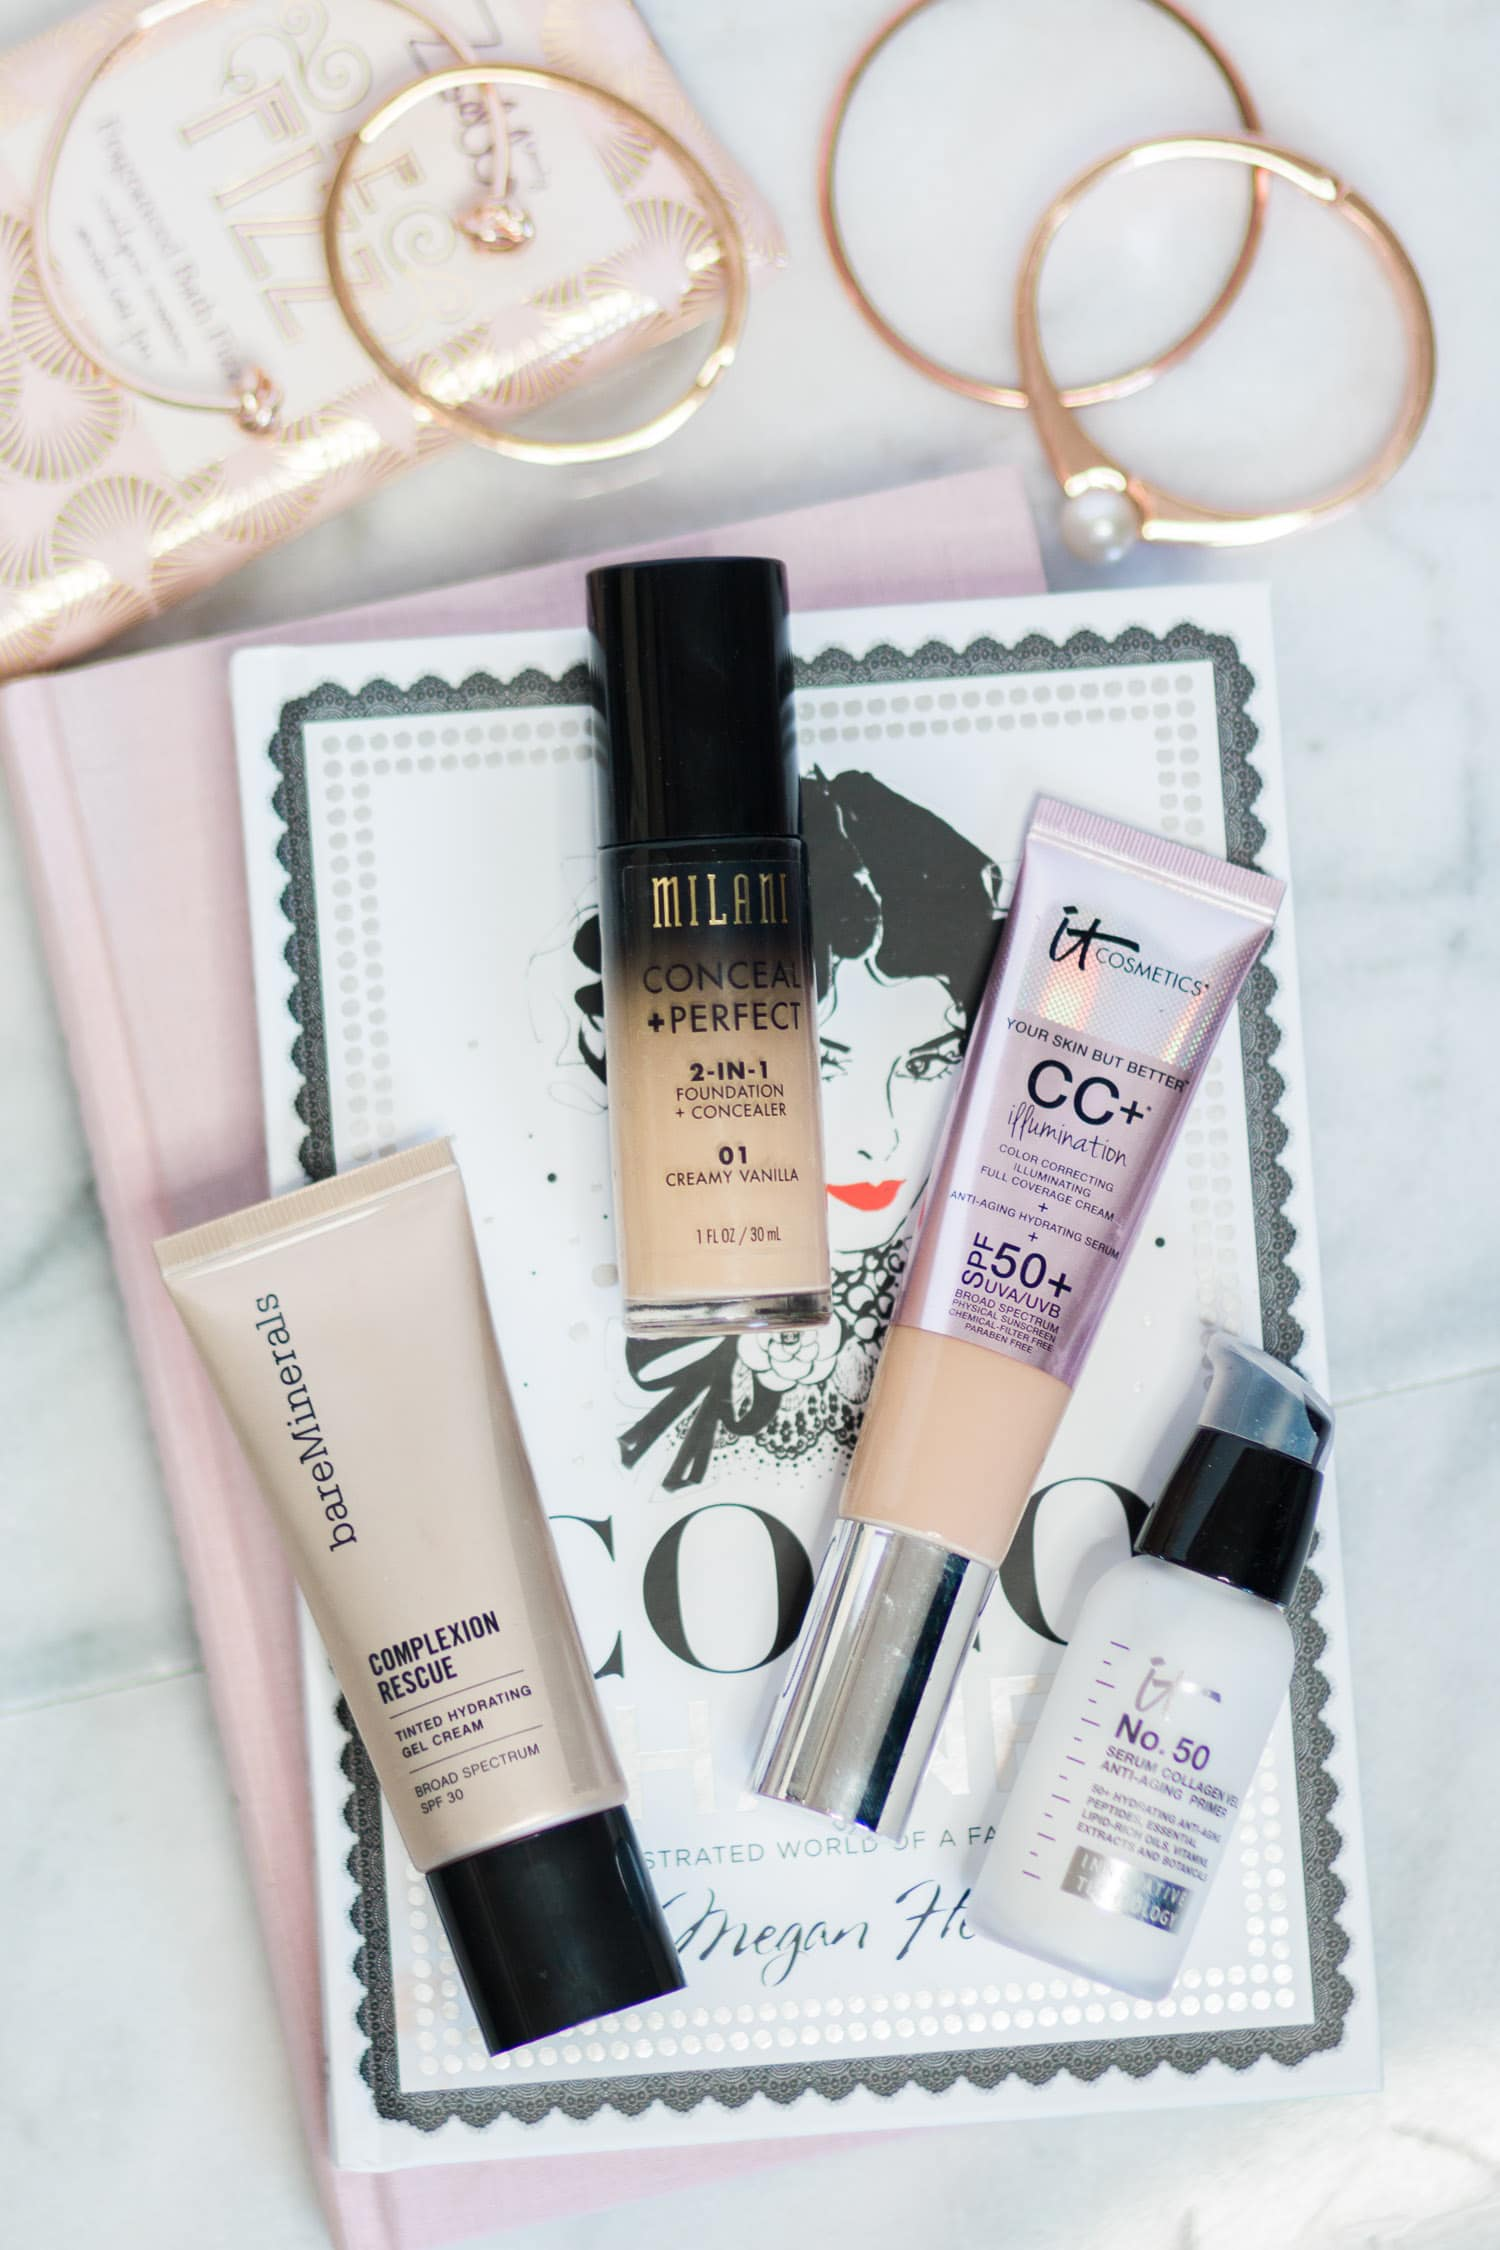 The best primer, foundation, CC cream, and tinted moisturizer, including: It Cosmetics Serum Collagen Veil Anti-Aging Primer, It Cosmetics CC+ Cream Illumination SPF 50+, Milani Conceal + Perfect 2-in-1 Foundation + Concealer, and bareMinerals Complexion Rescue Tinted Hydrating Gel Cream in Wheat   Summer beauty favorites by beauty blogger Ashley Brooke Nicholas